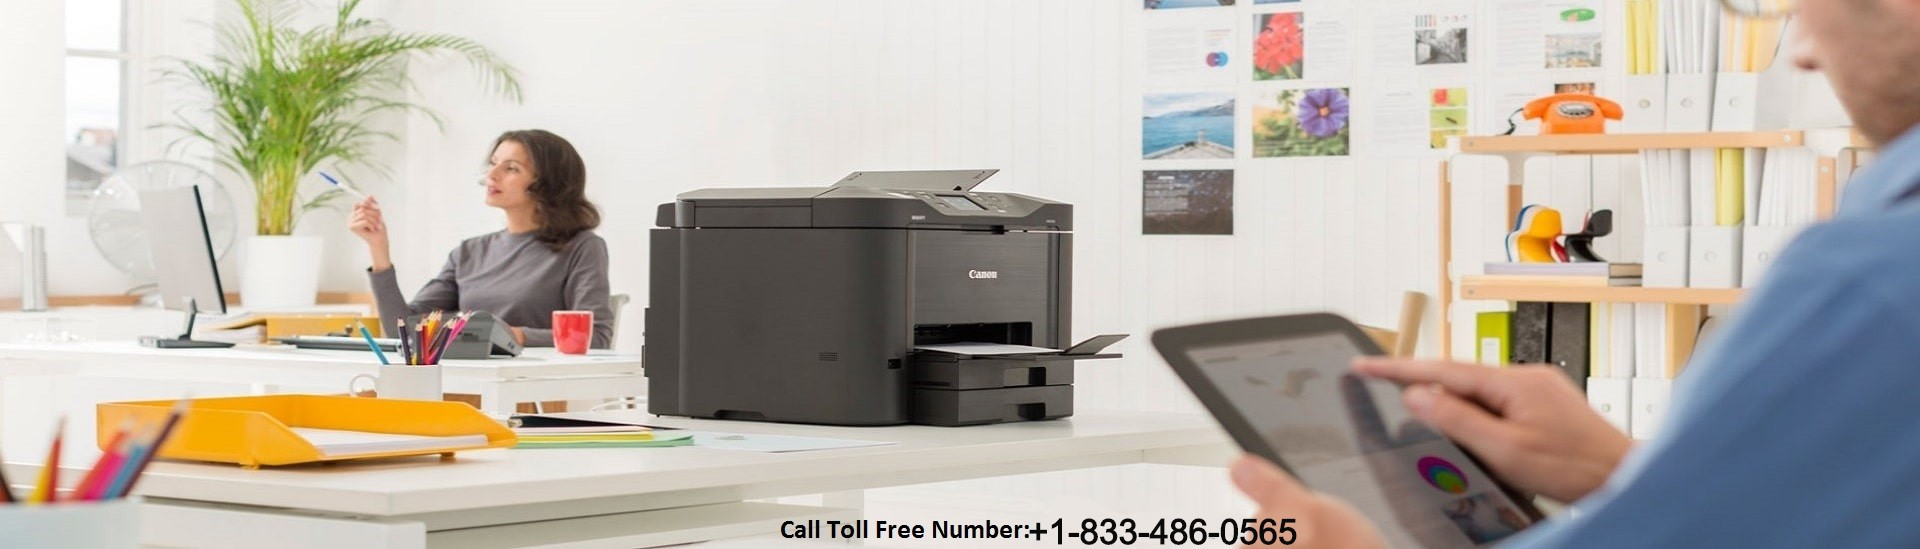 Printer call,Support number usa,toll free,support number, usa tollfree number,printer support number